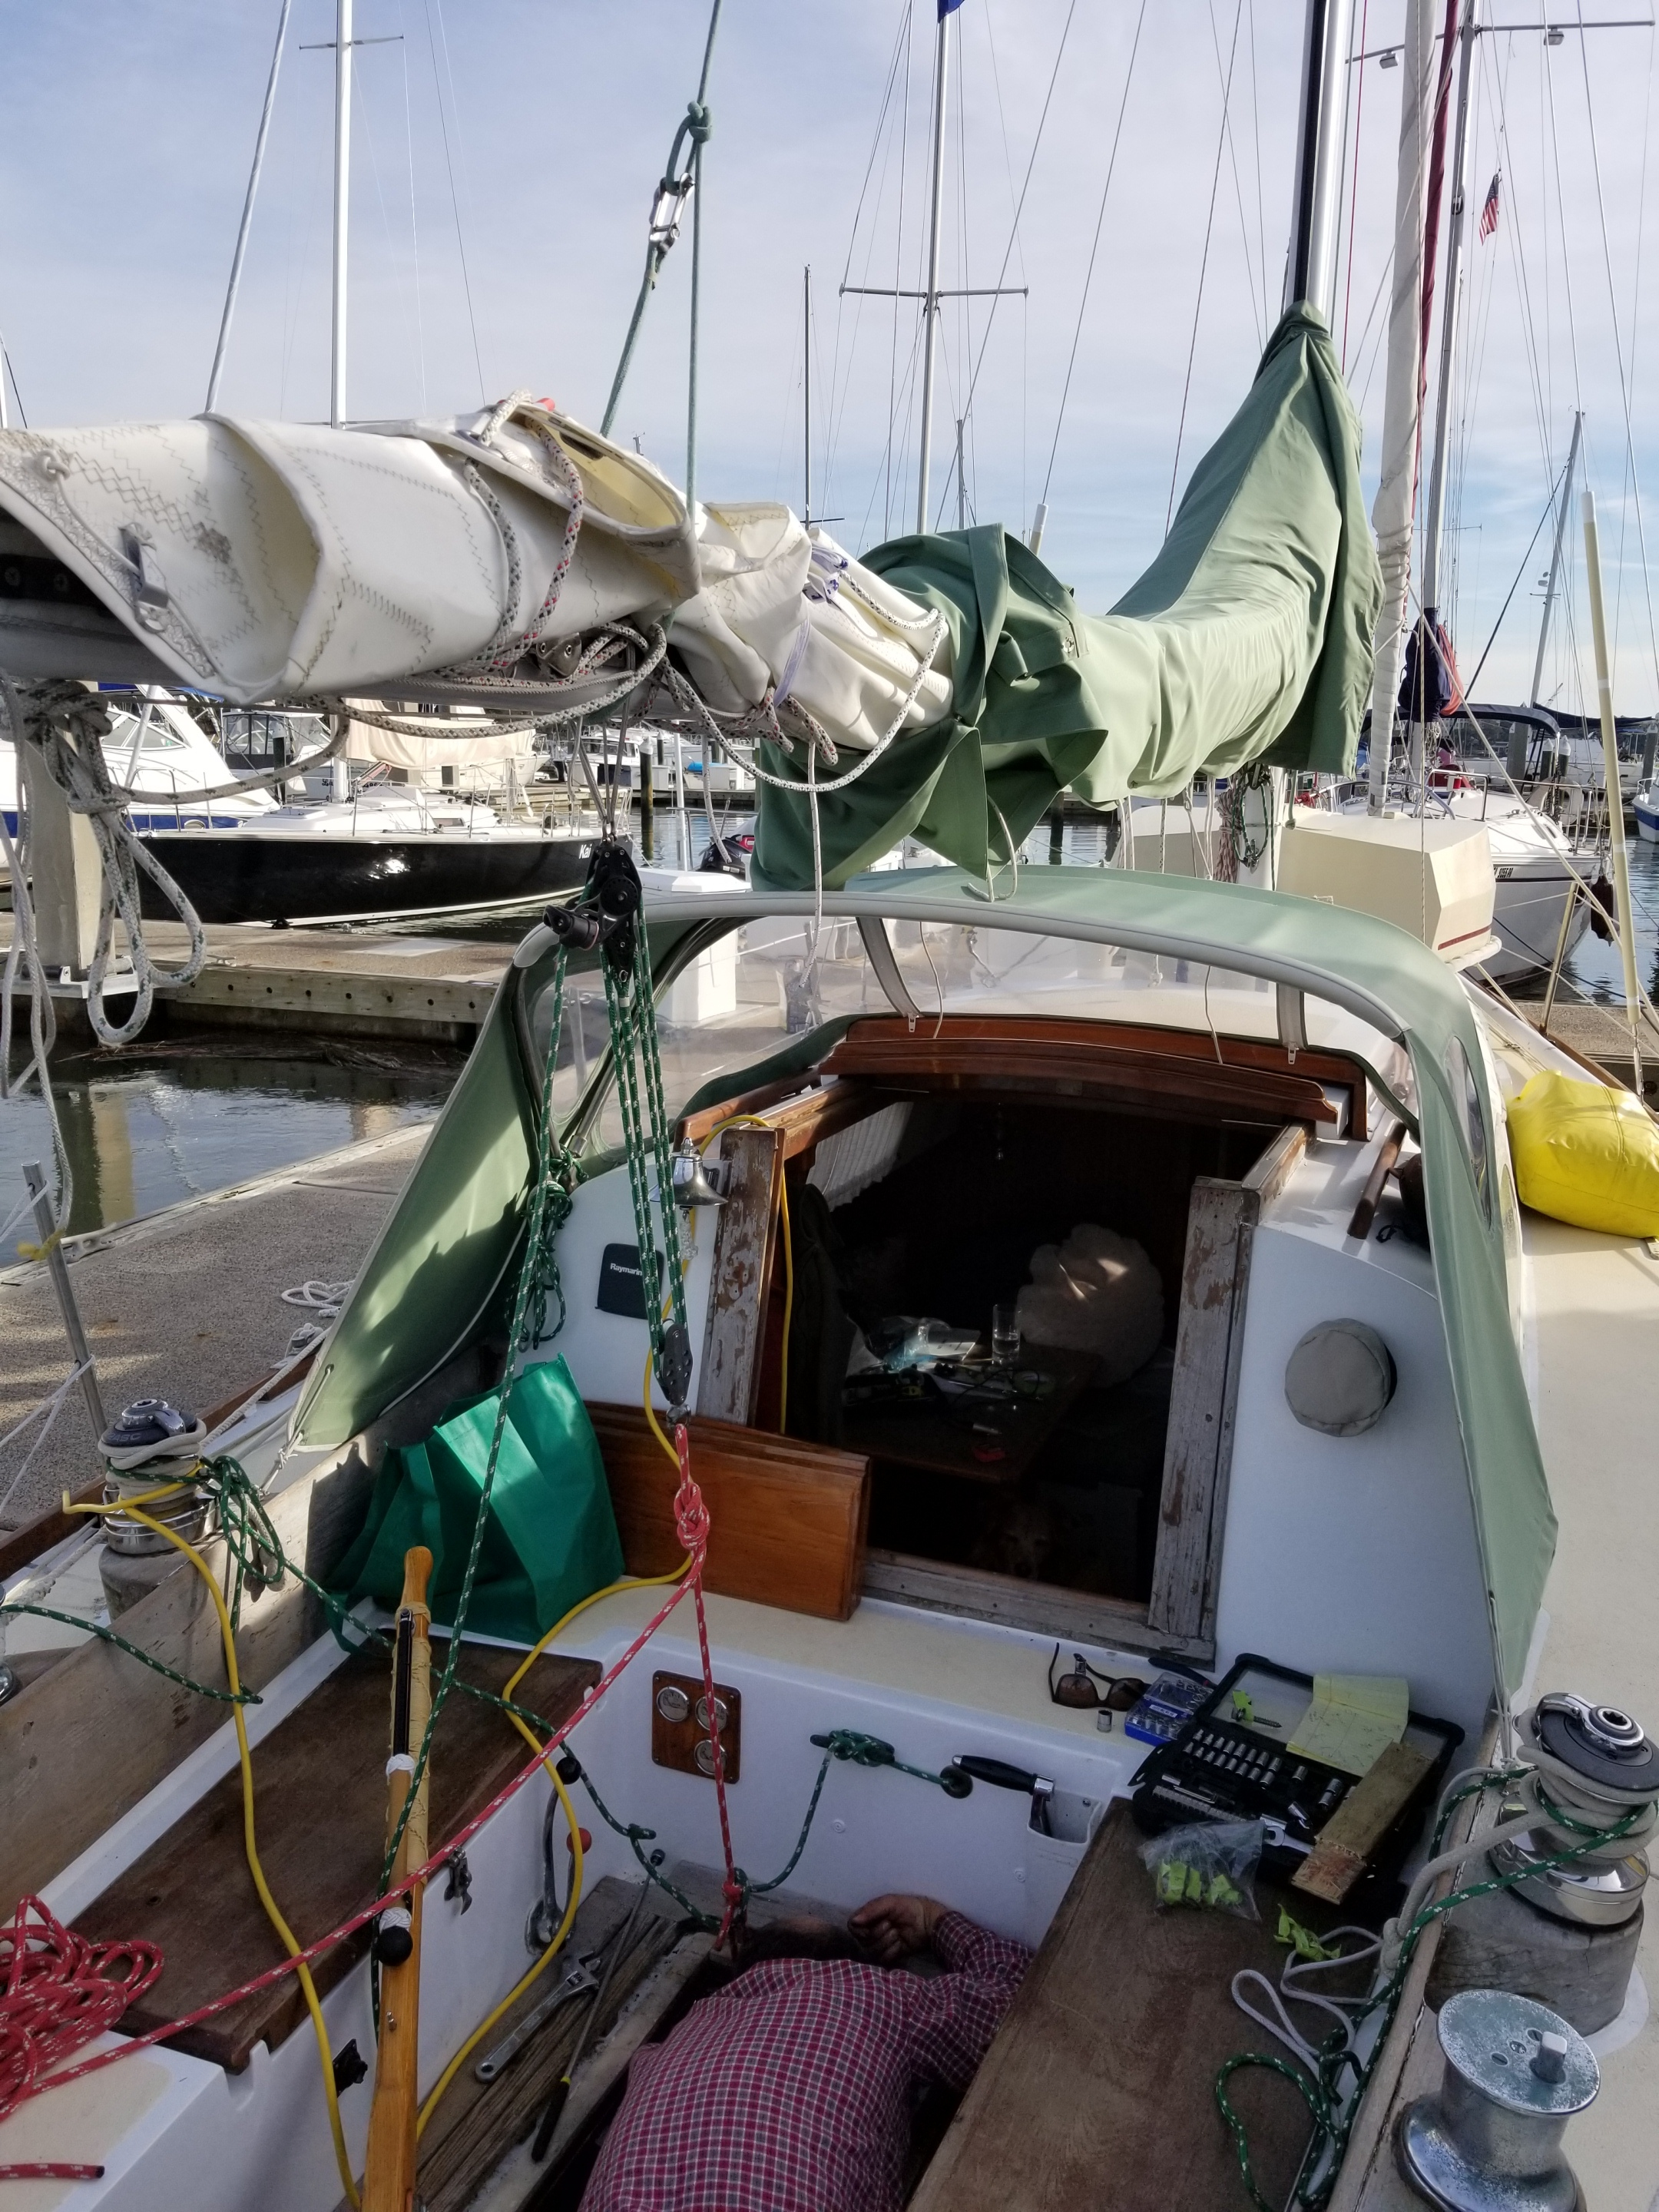 Note that when we use the boom as a crane, we attach the main halyard opposite the lifting tackle. This way, the boom doesn't bow under the load.